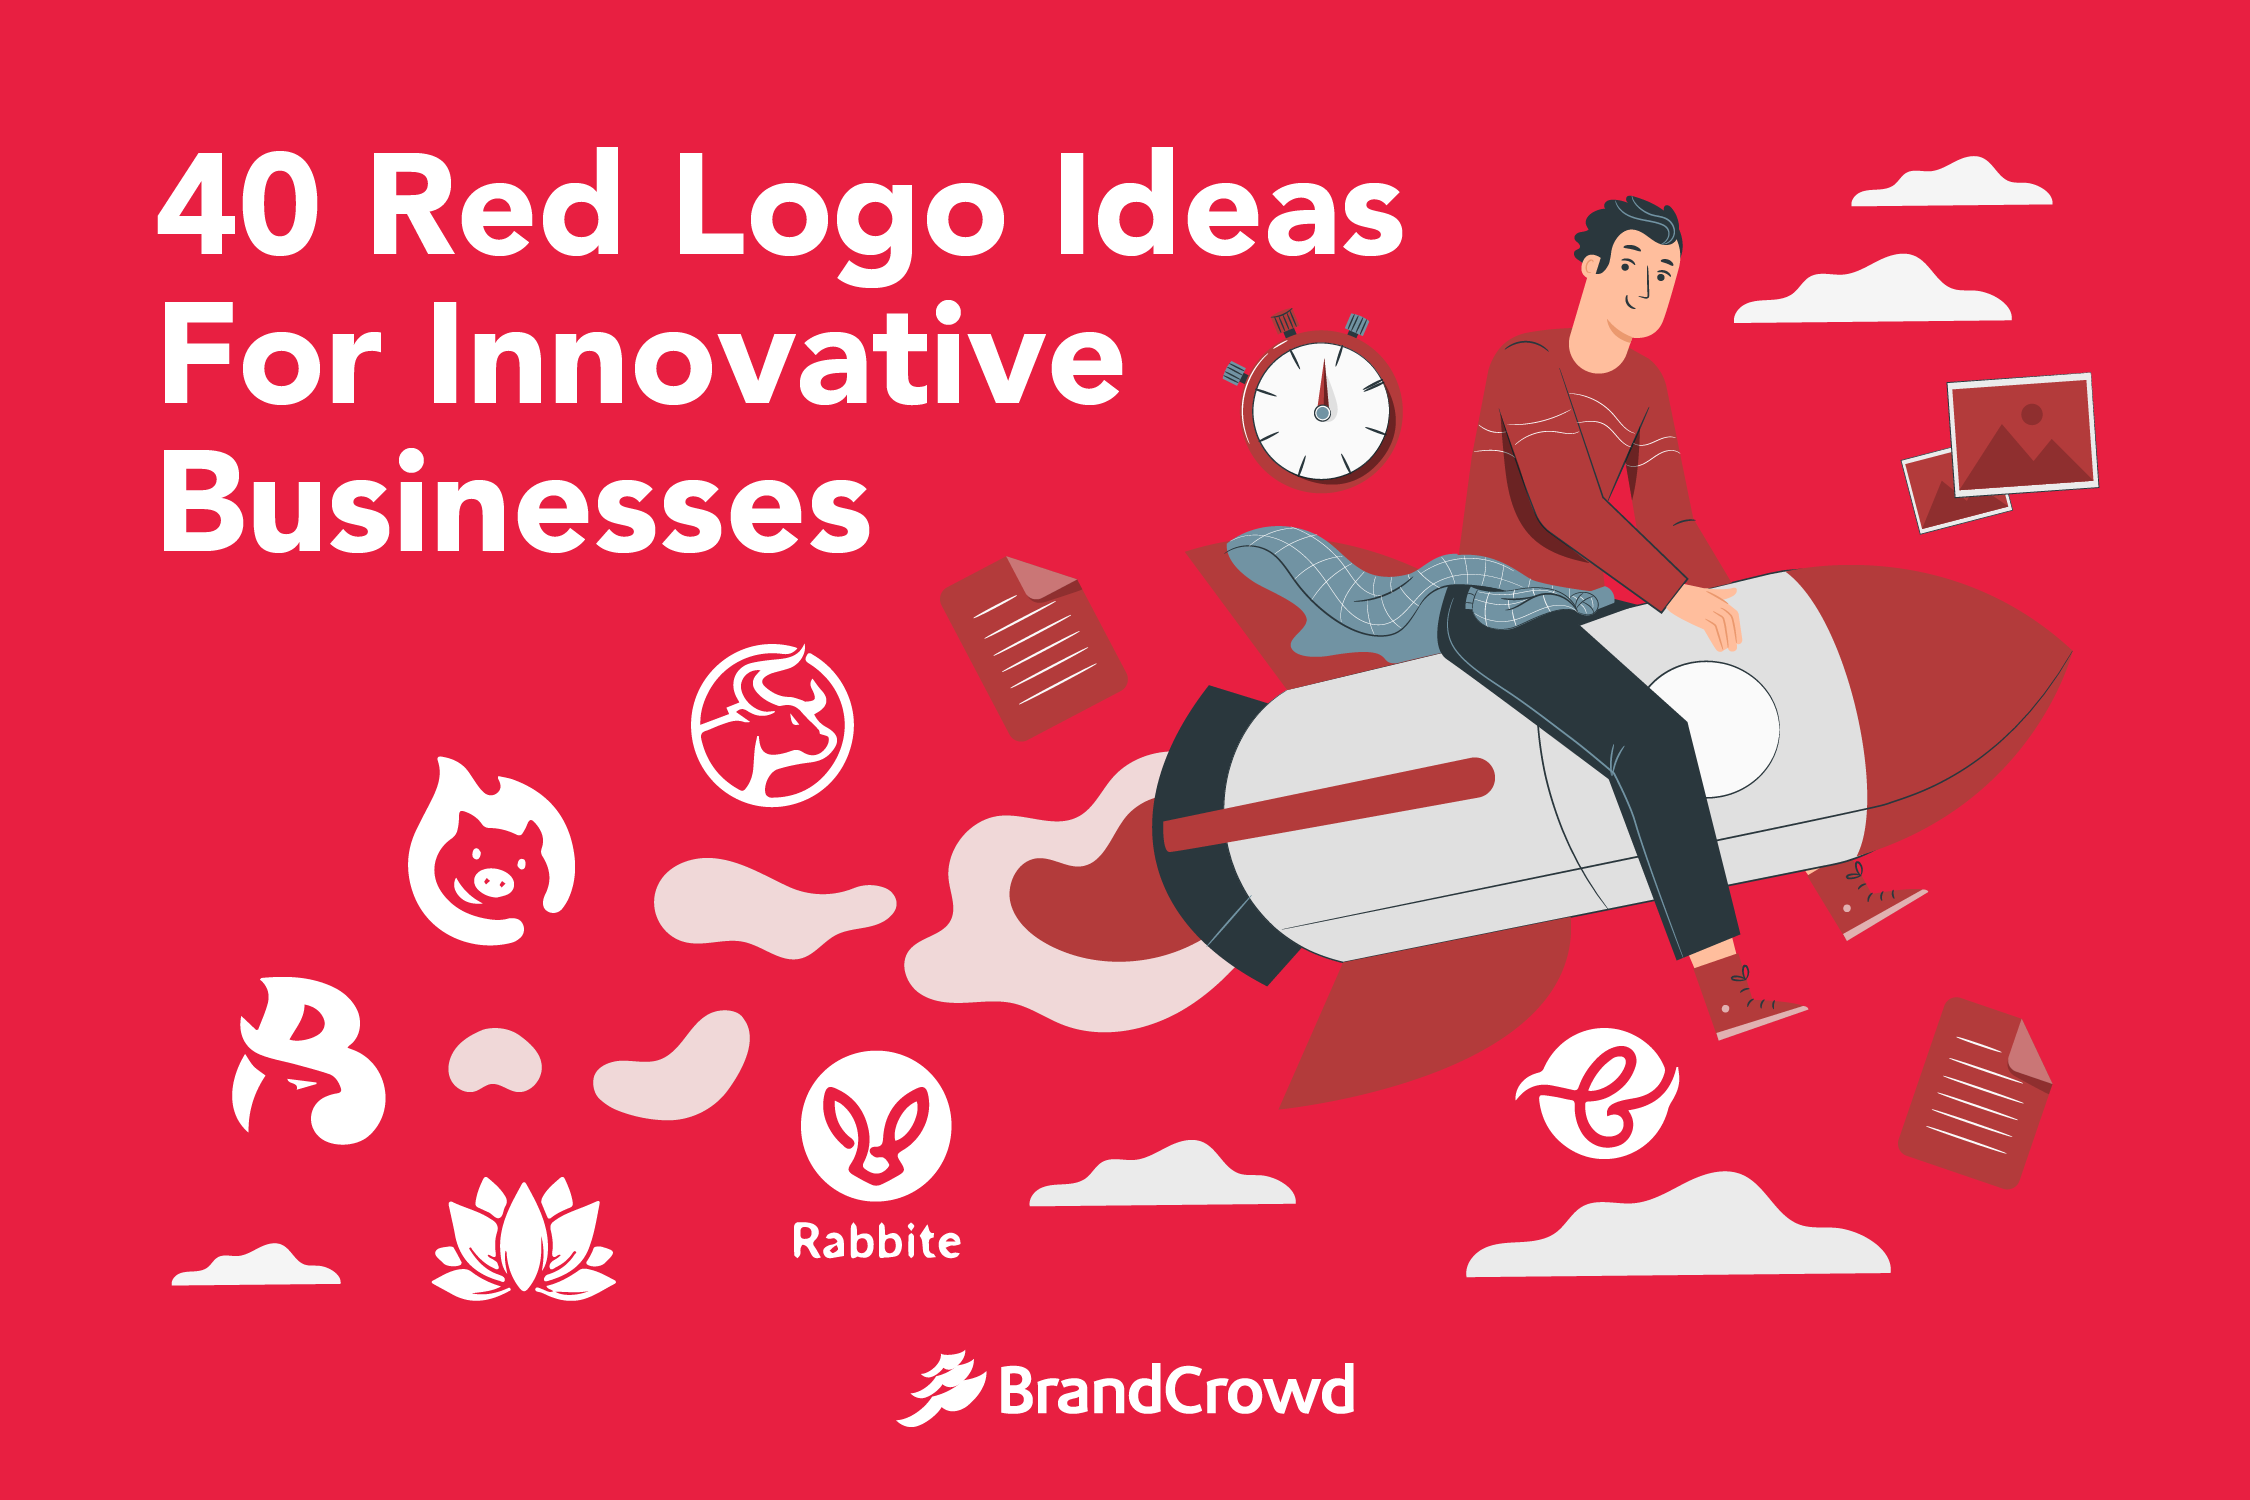 the-header-features-an-illustration-of-a-man-sitting-atop-of-a-rocket-while-it-emits-smoke-and-logo-ideas-on-its-rear-engine-the-blog-title-typography-is-placed-on-the-top-left-region